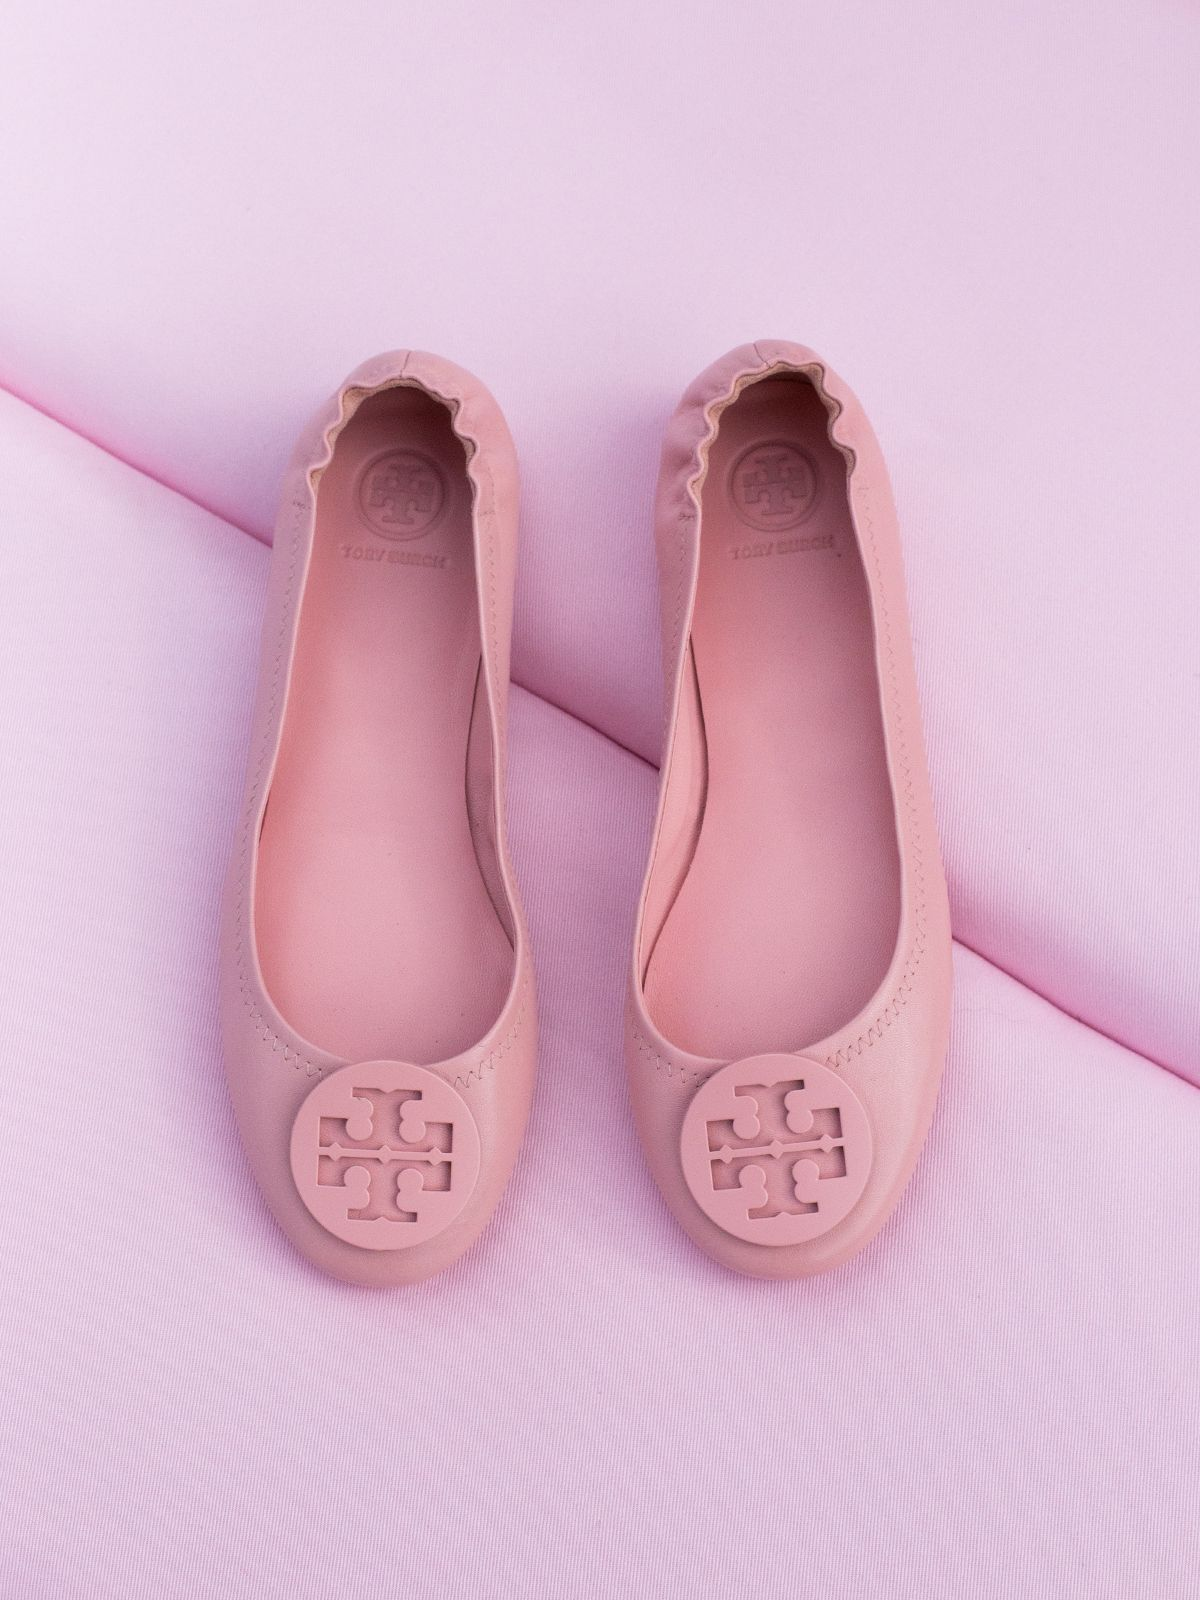 a75236024 Tory Burch Minnie Flats